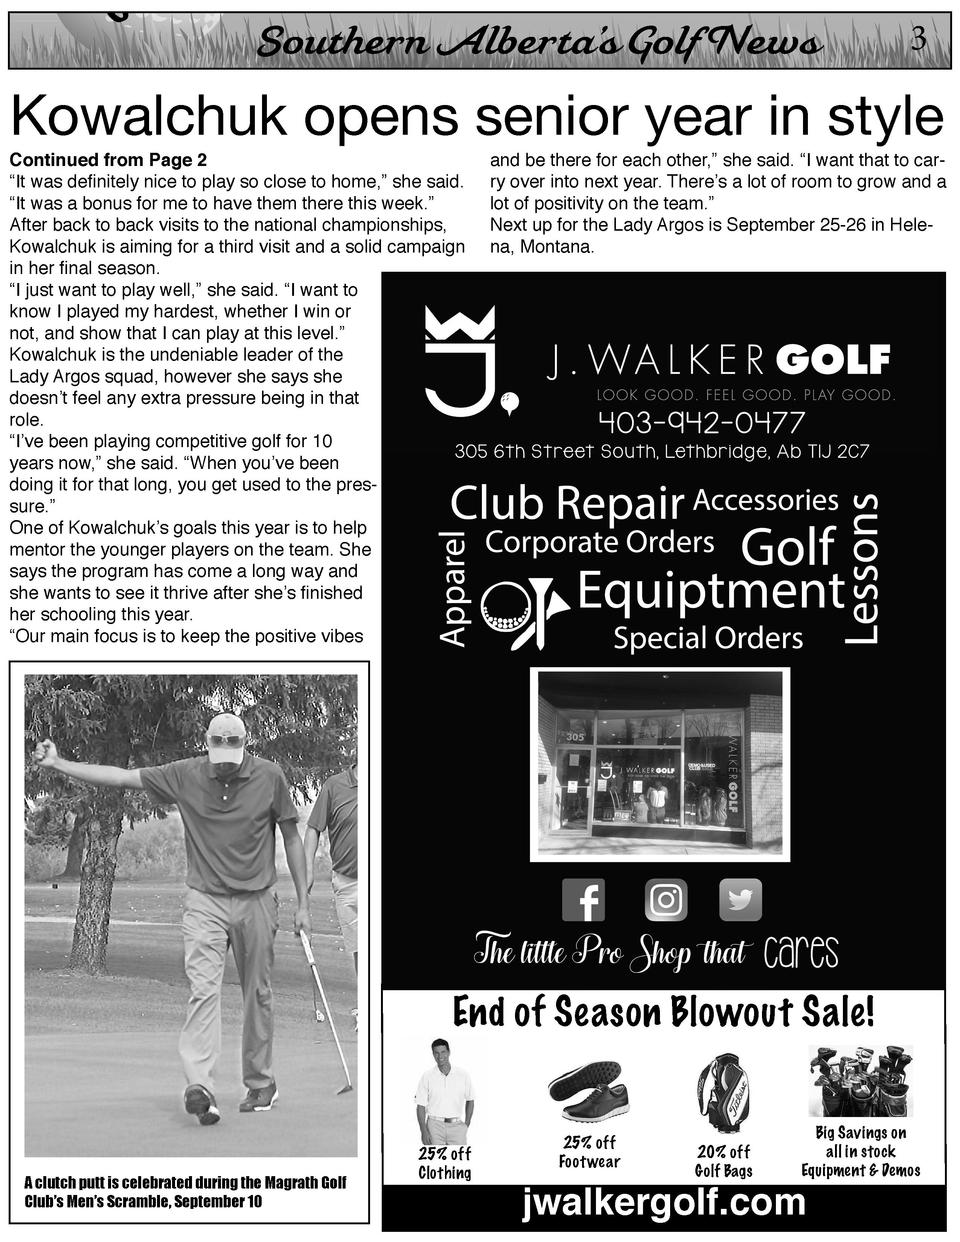 On  Southern Alberta   s Golf News  3  Kowalchuk opens senior year in style Continued from Page 2    It was definitely nic...